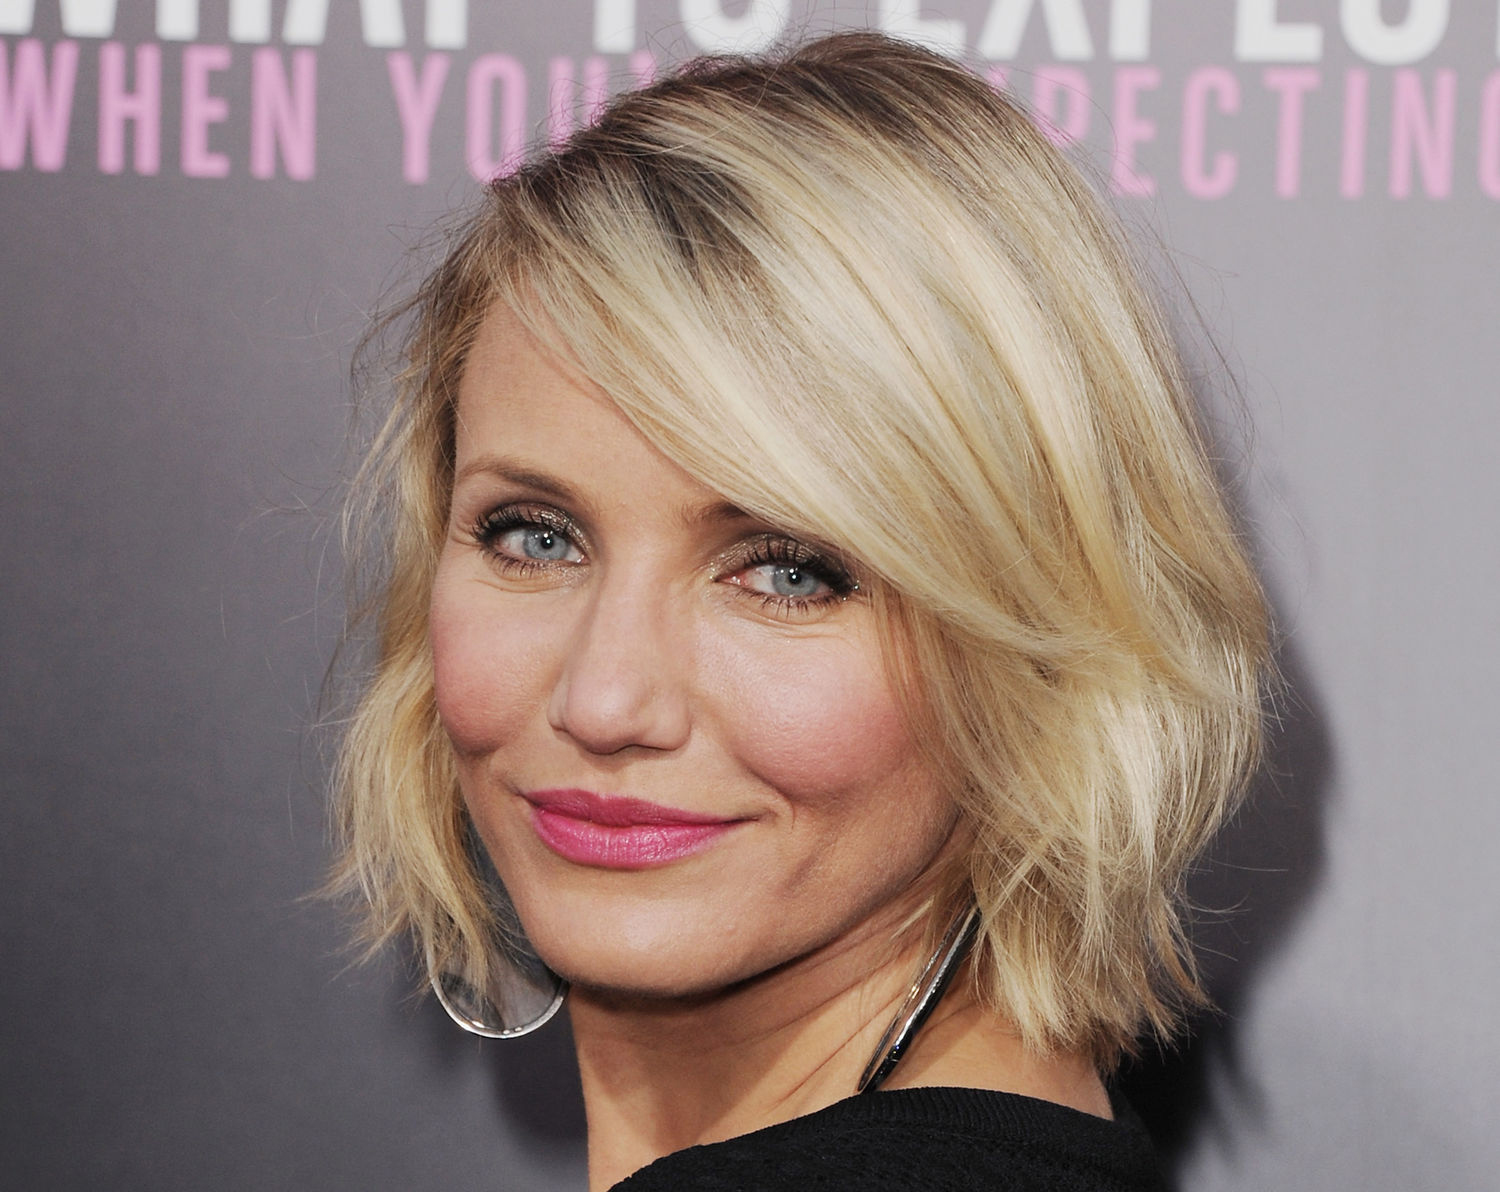 Cameron Diaz Nose Job Plastic Surgery Before and After ...